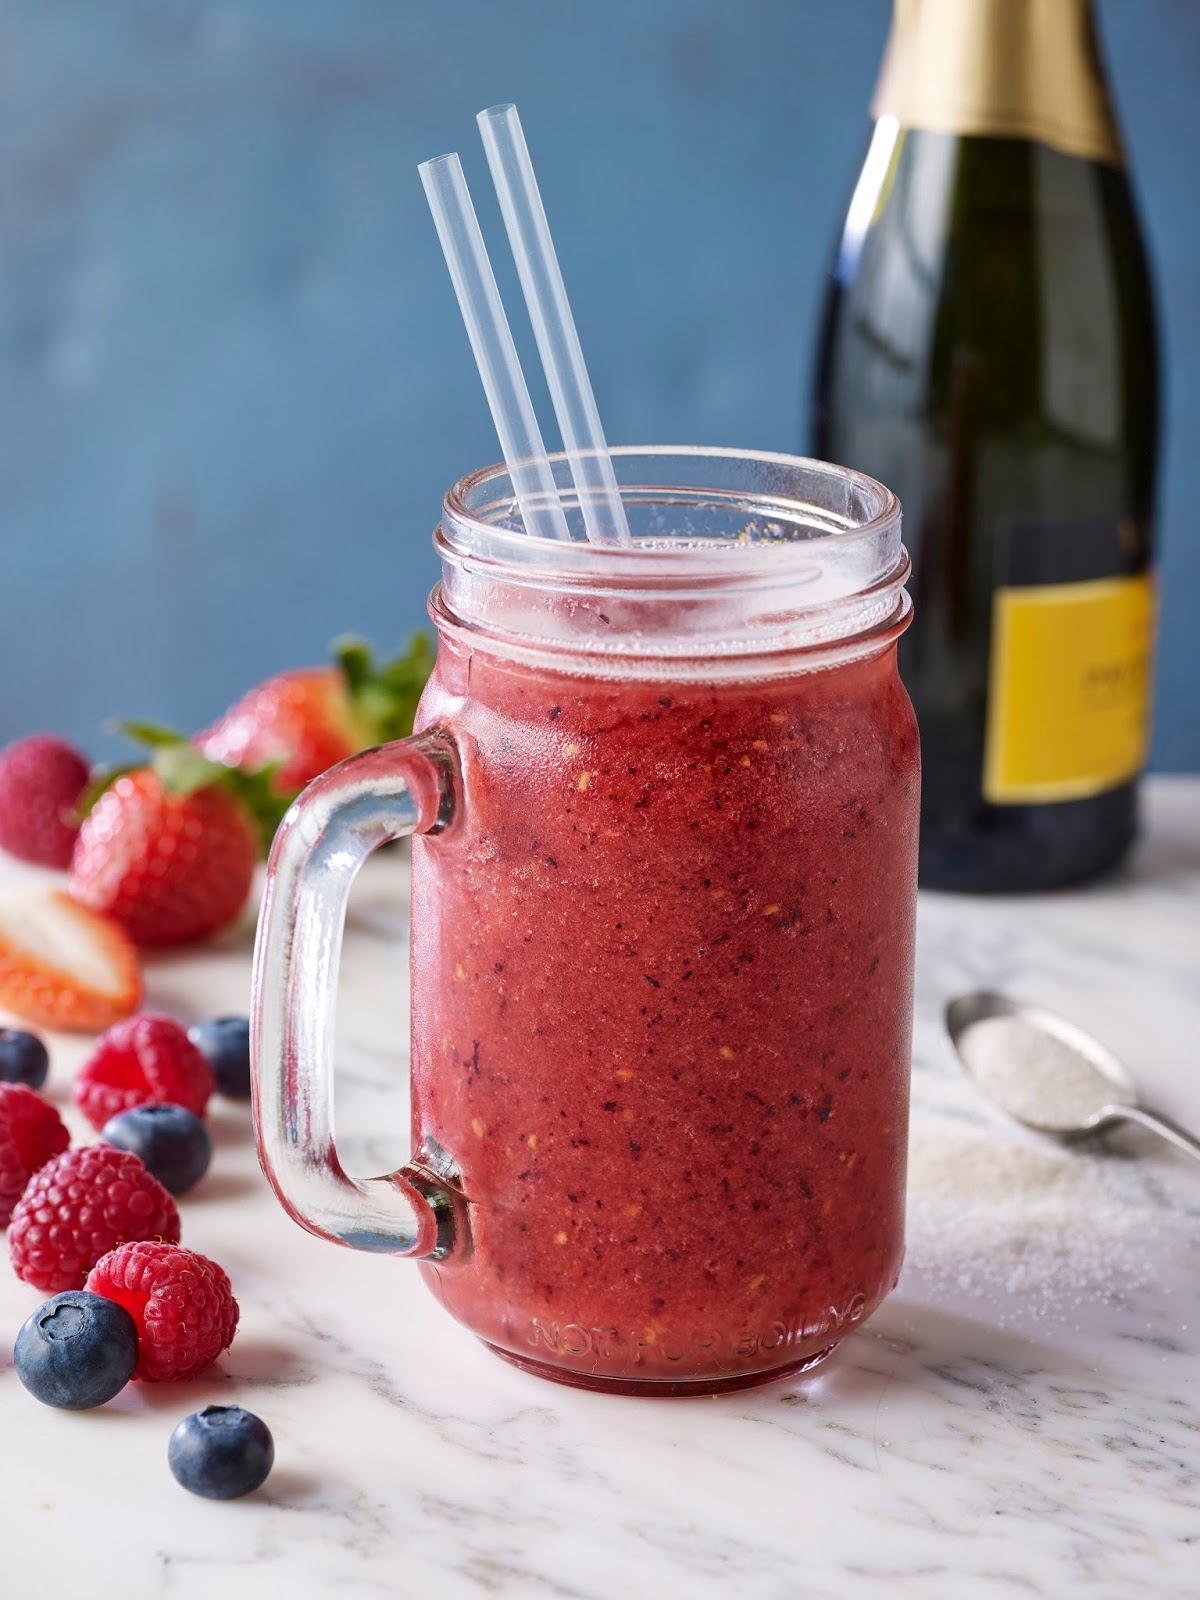 How To Make A Summer Pudding Prosecco Slush